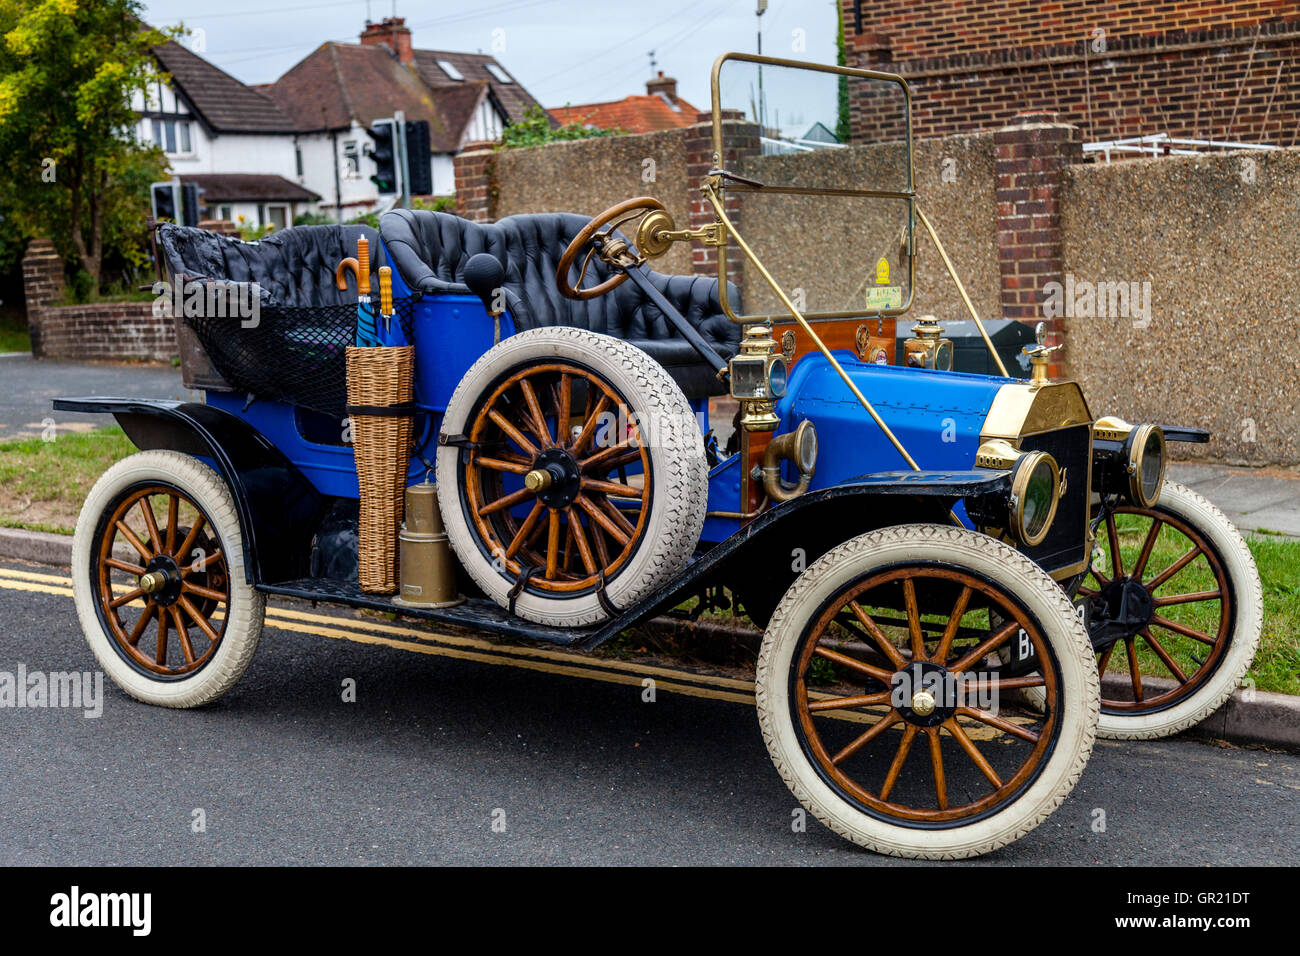 Model T Ford Vintage Car Parked On The Street, Brighton, Sussex, UK - Stock Image